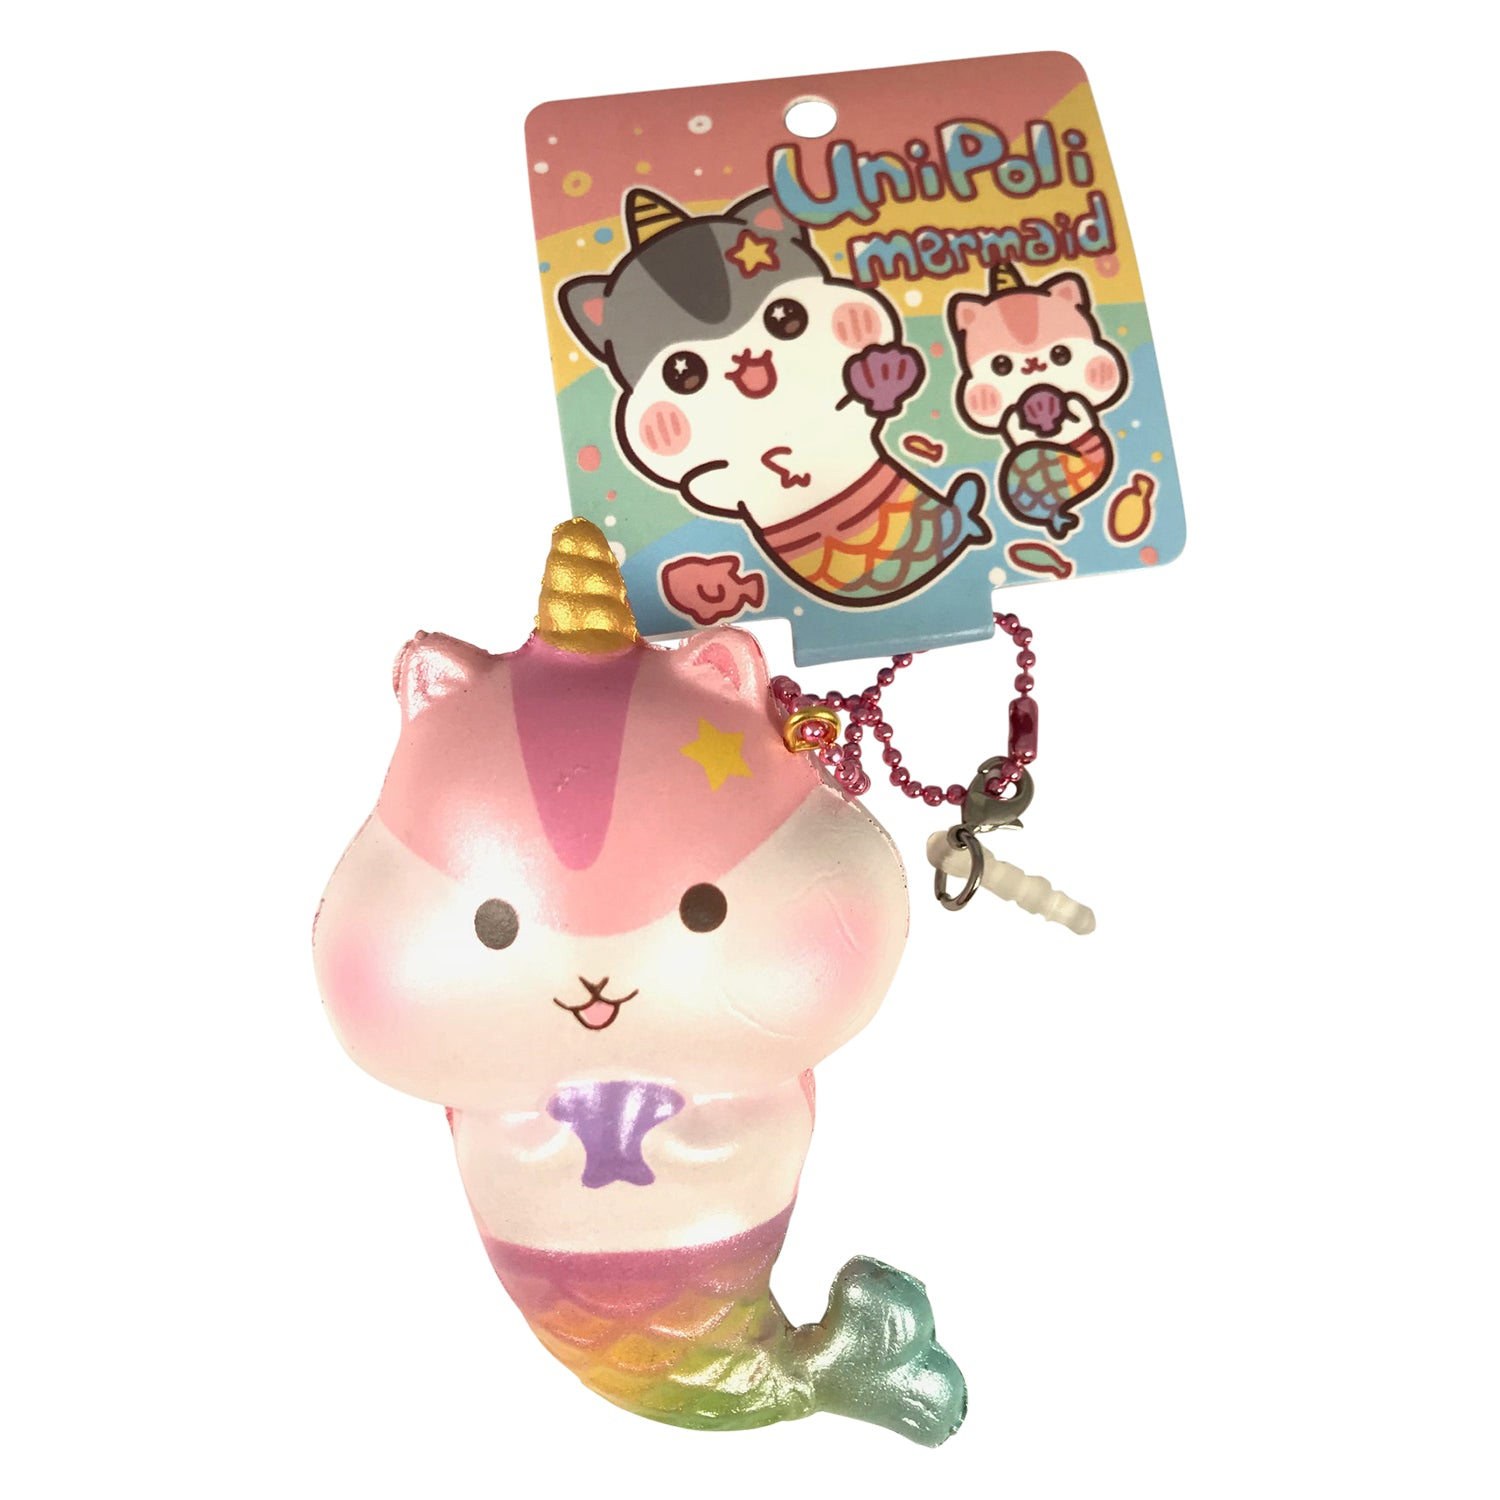 MINI SCENTED Uni Poli MERMAID!